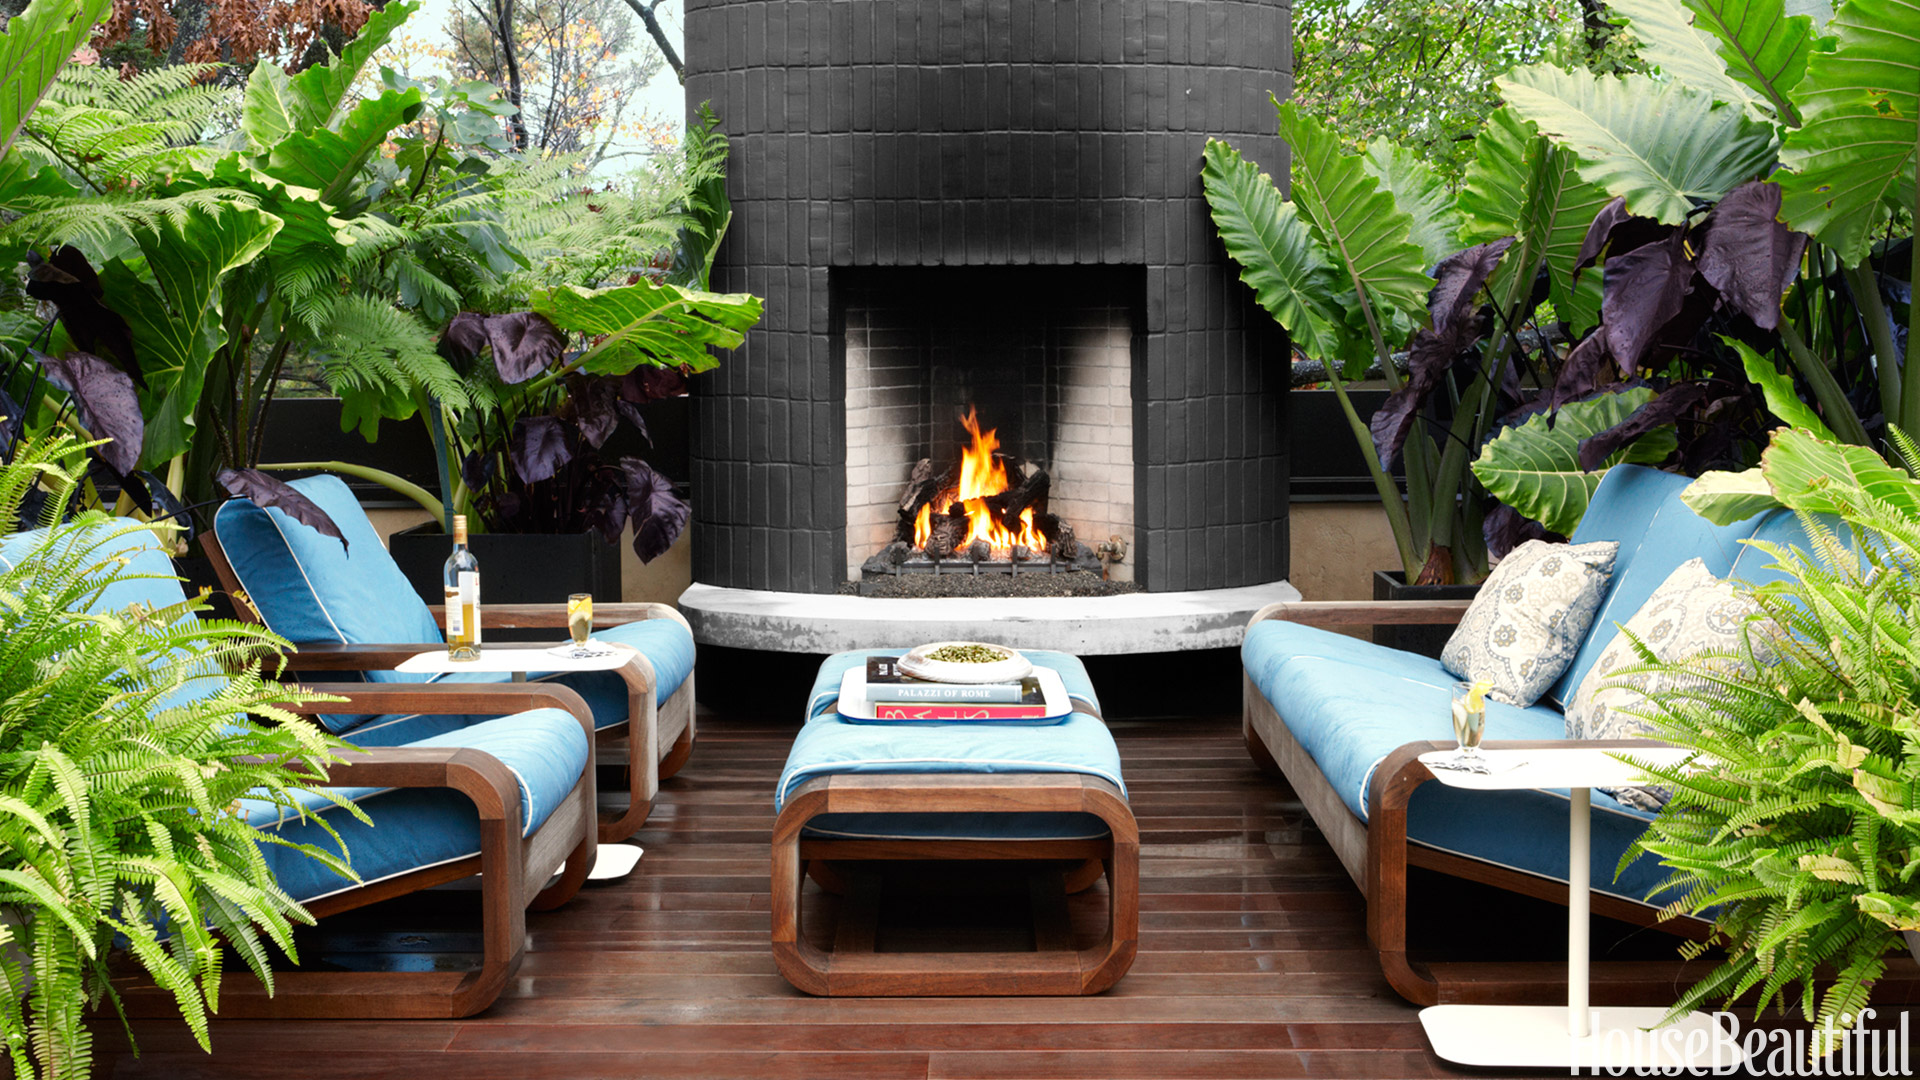 20 Outdoor Fireplaces That Will Keep You Warm All Night ... on Outdoor Fireplaces Ideas  id=89194